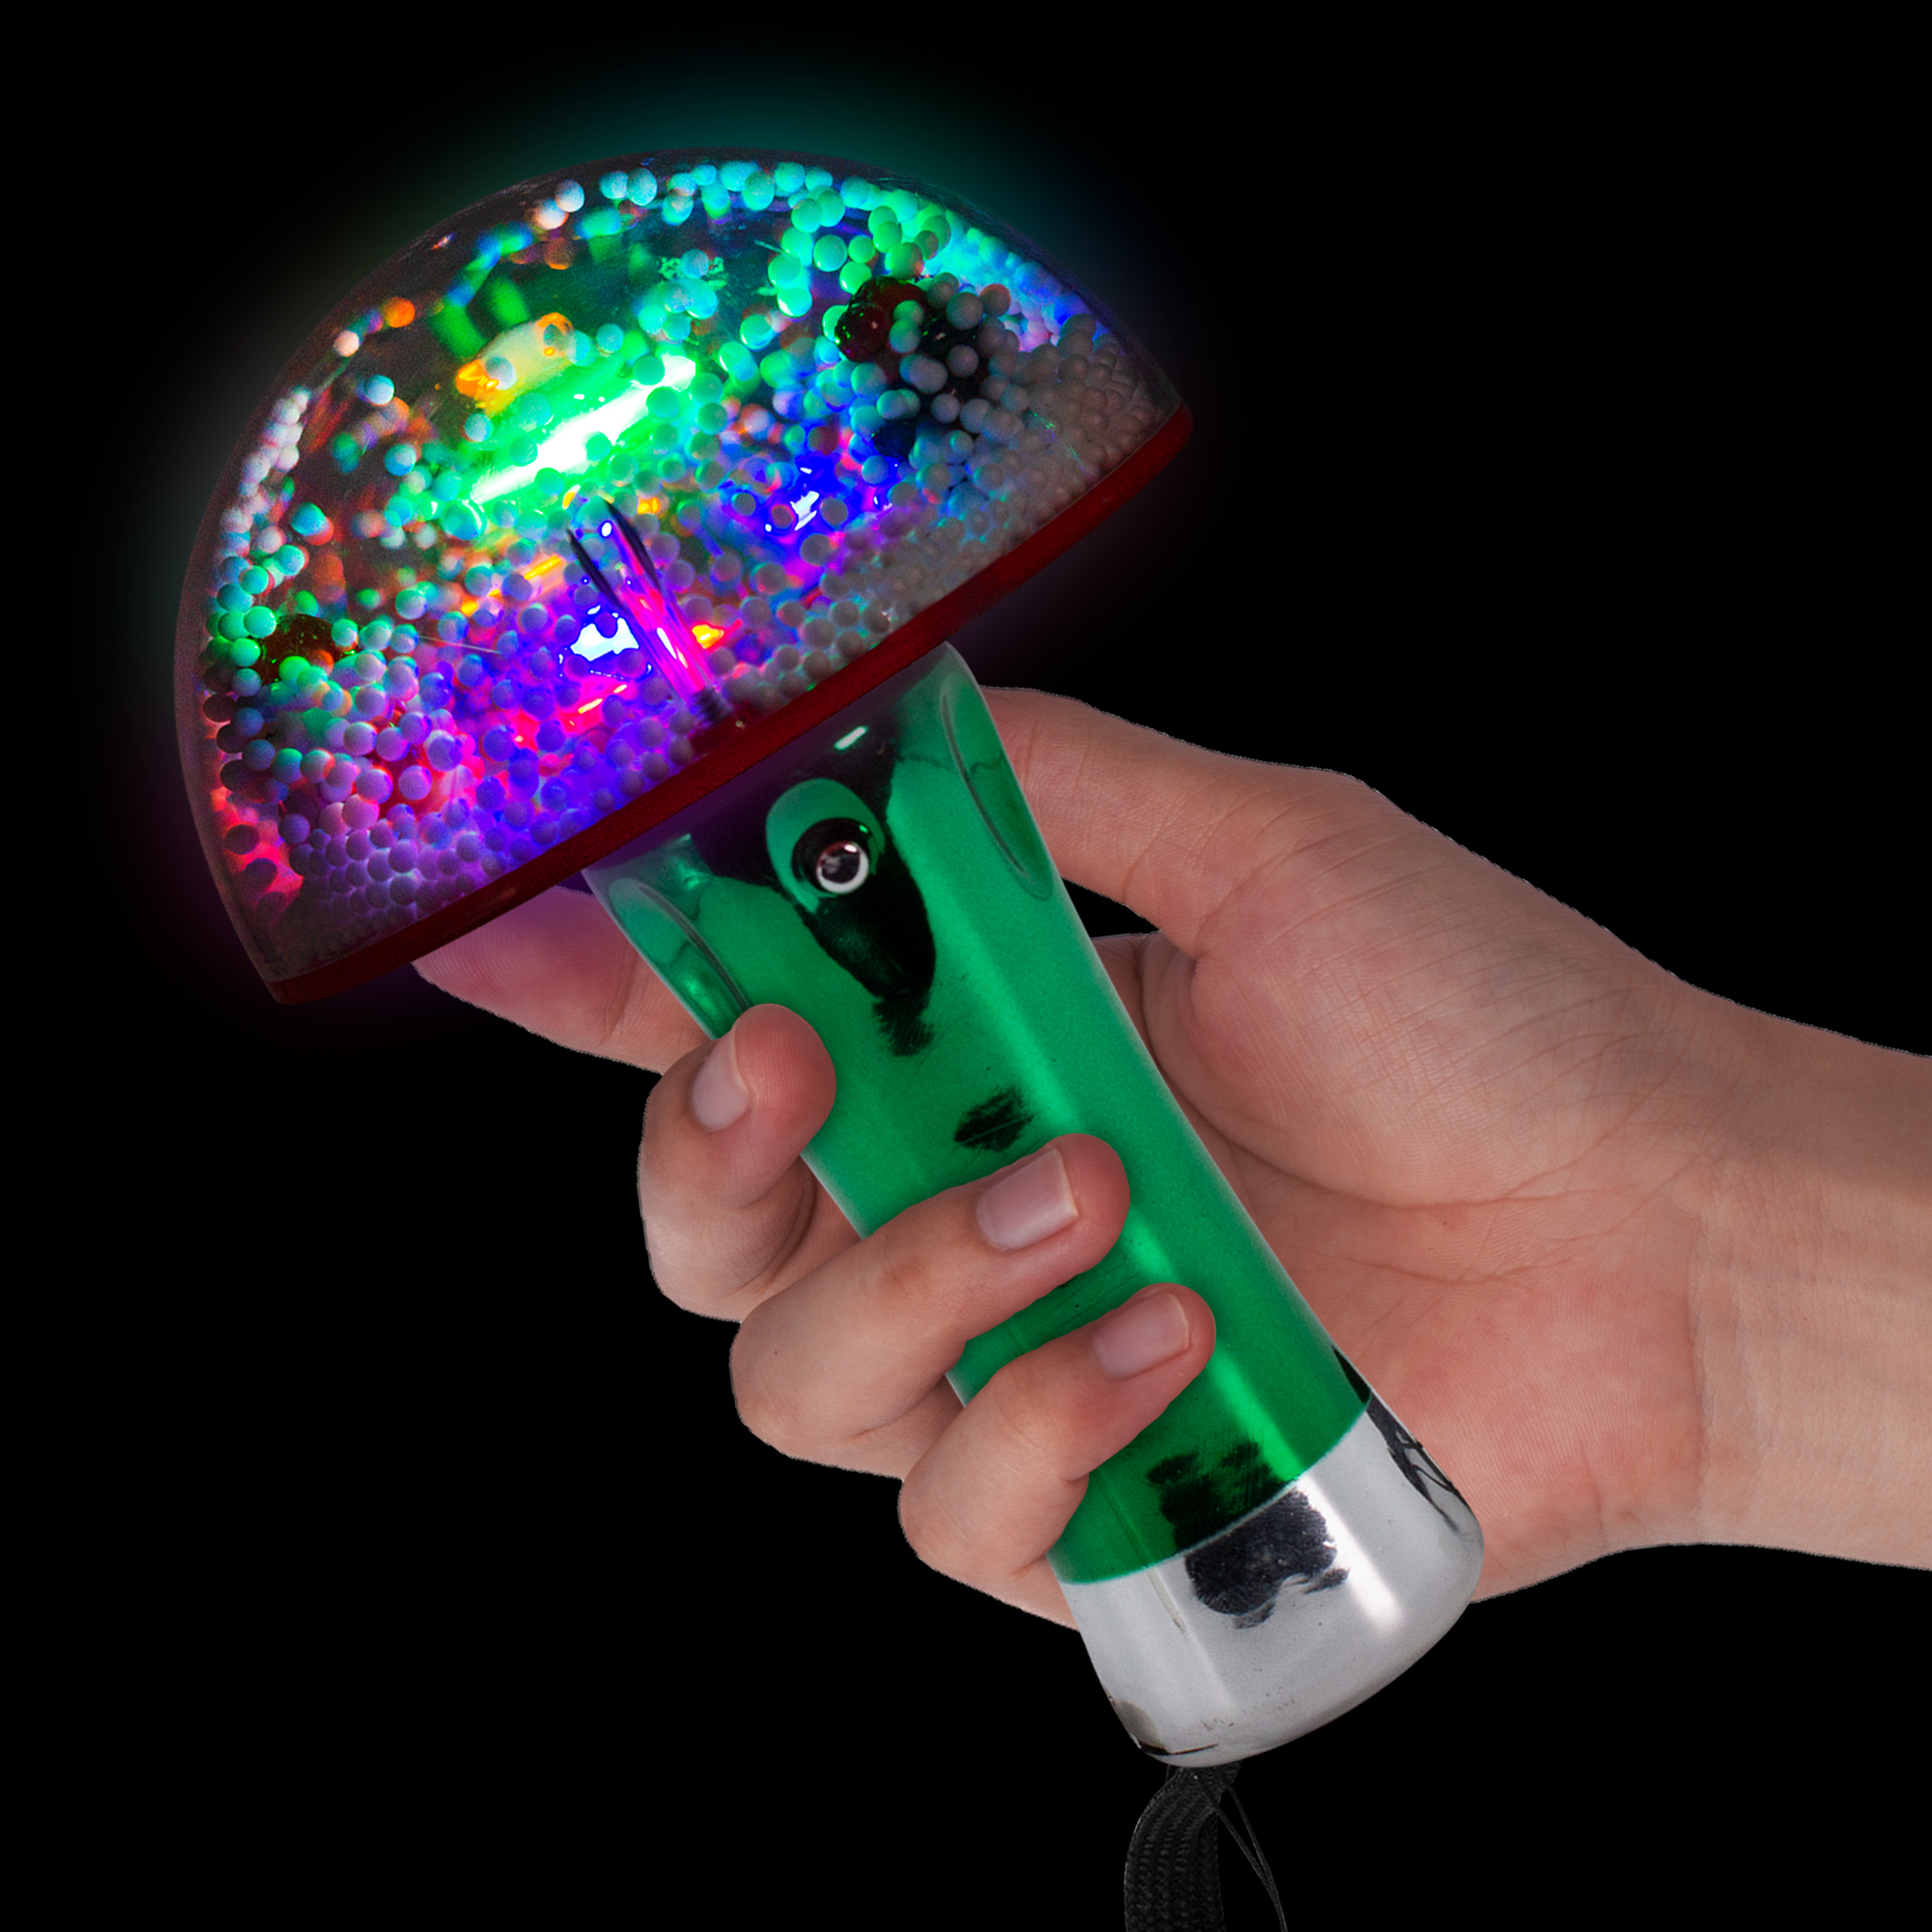 LED XMAS TREE SNOW GLOBE WAND